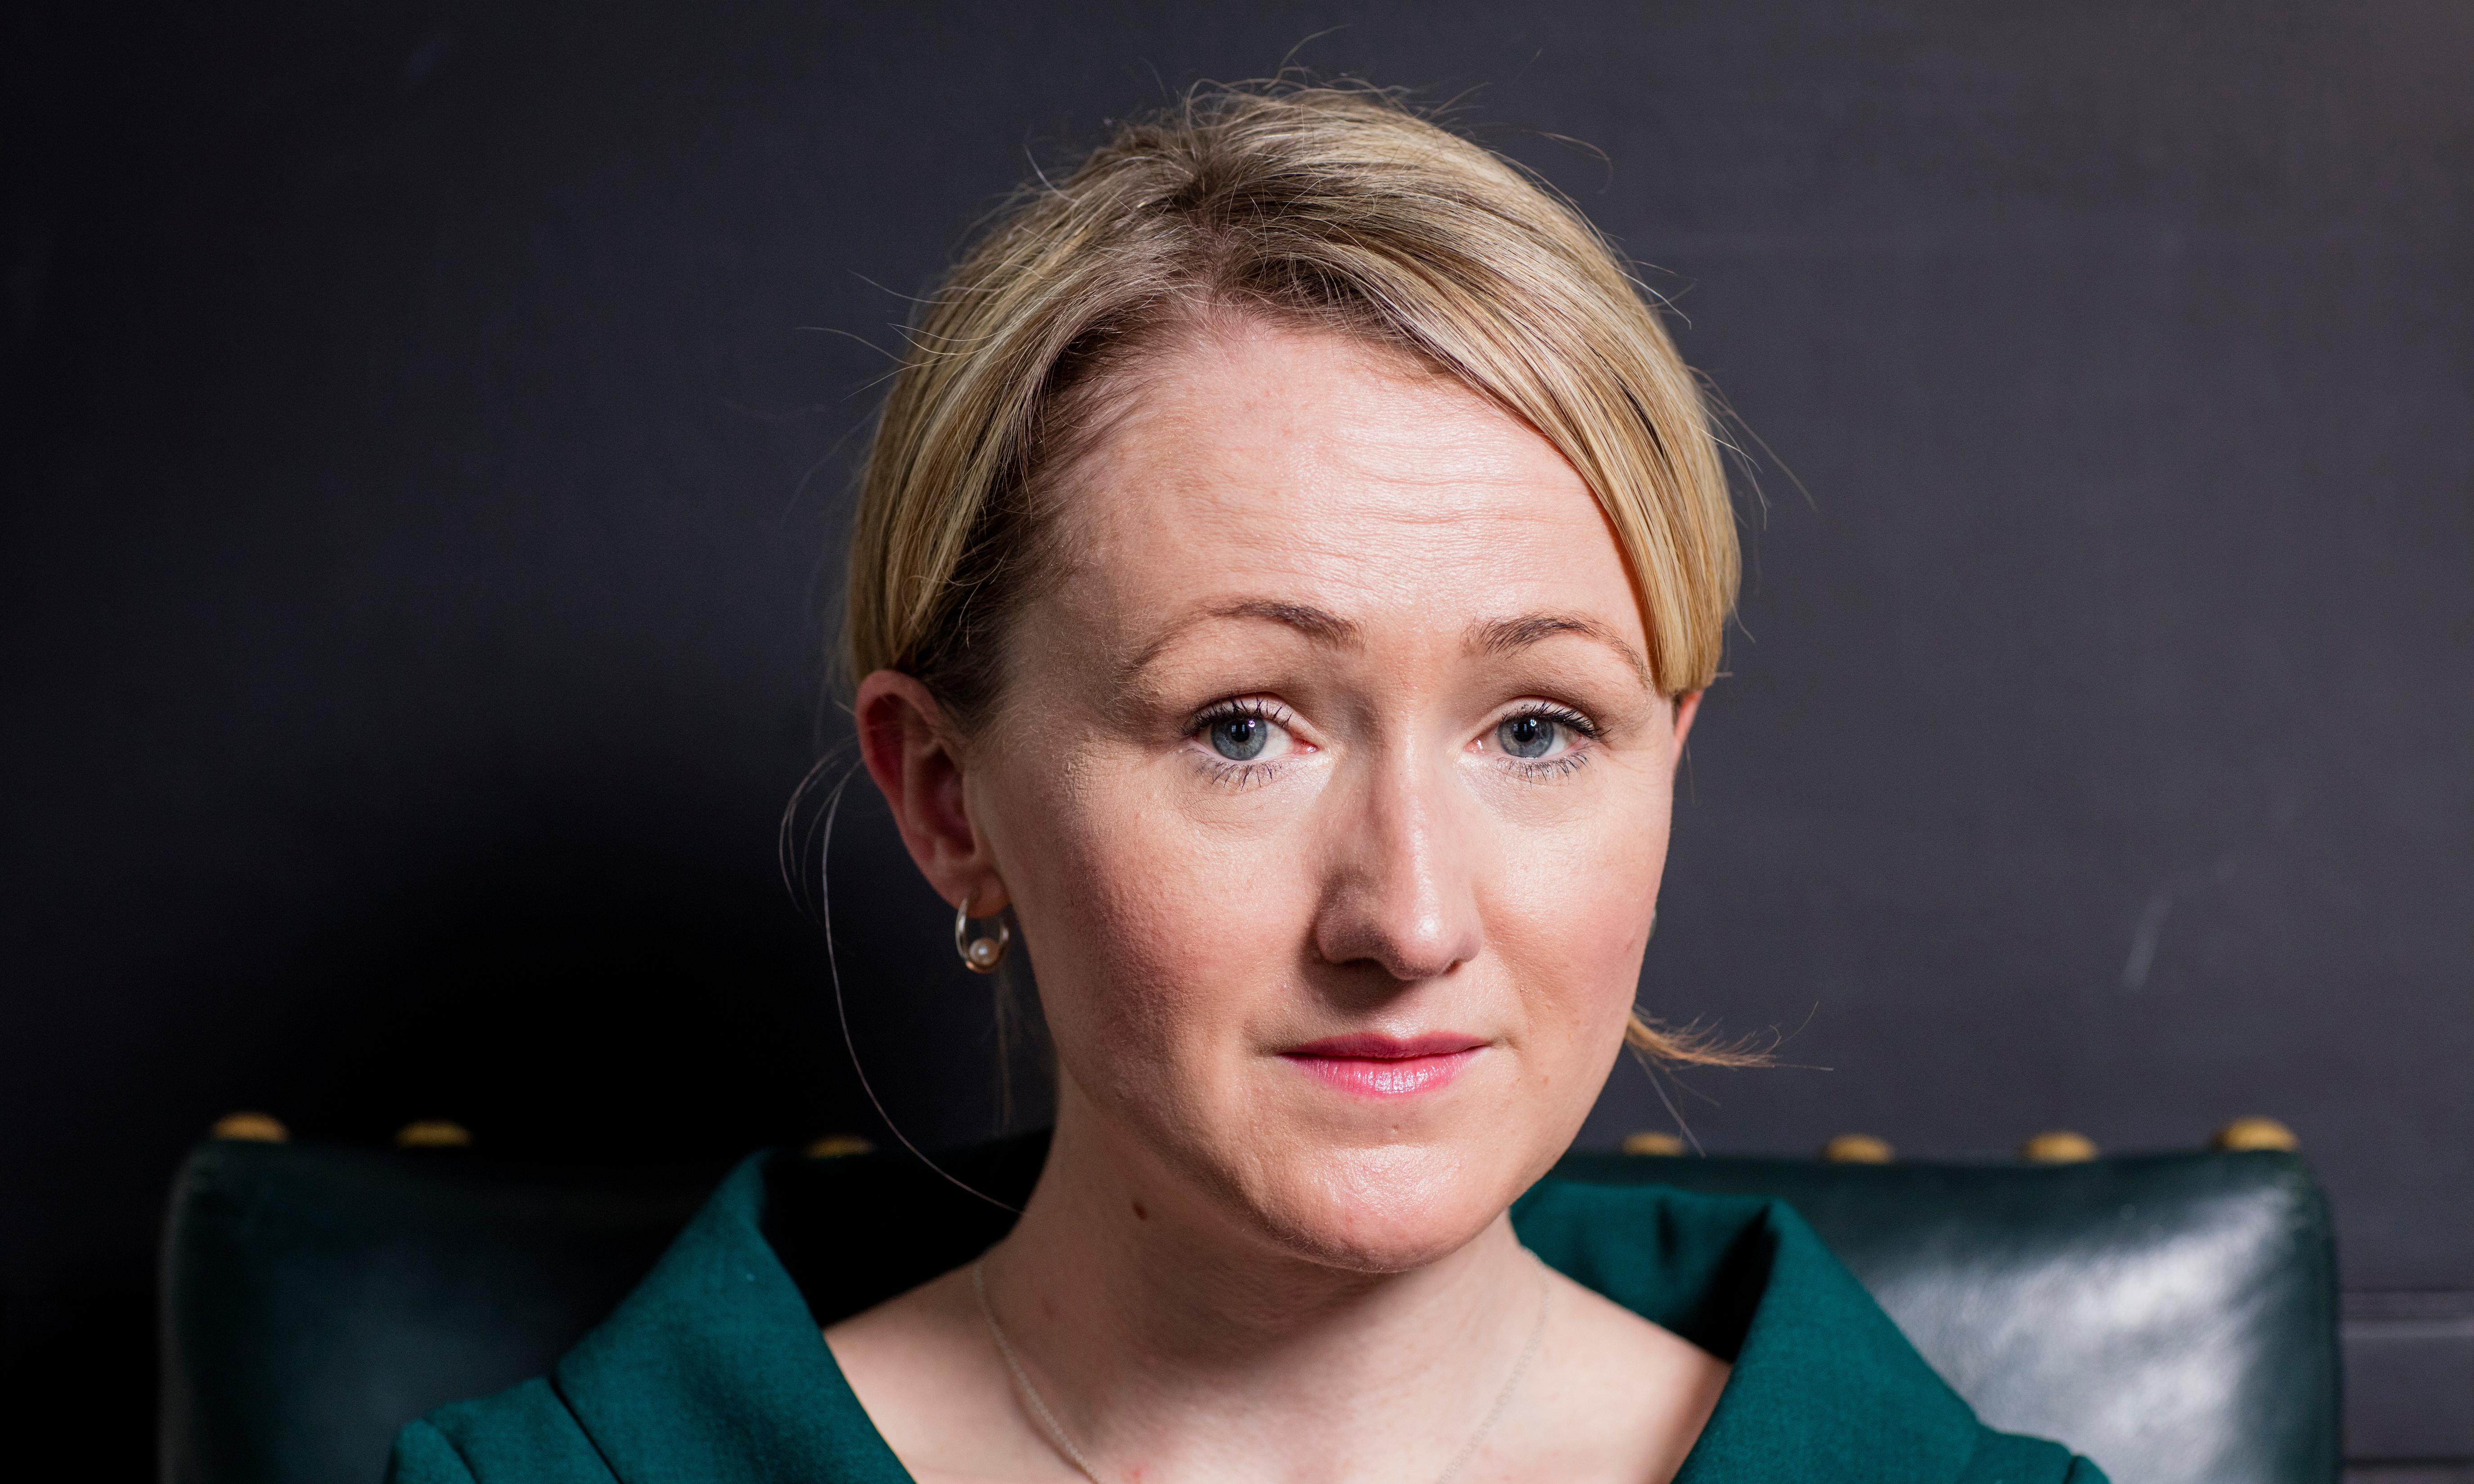 Rebecca Long-Bailey sets out vision of hope in Labour leadership pitch